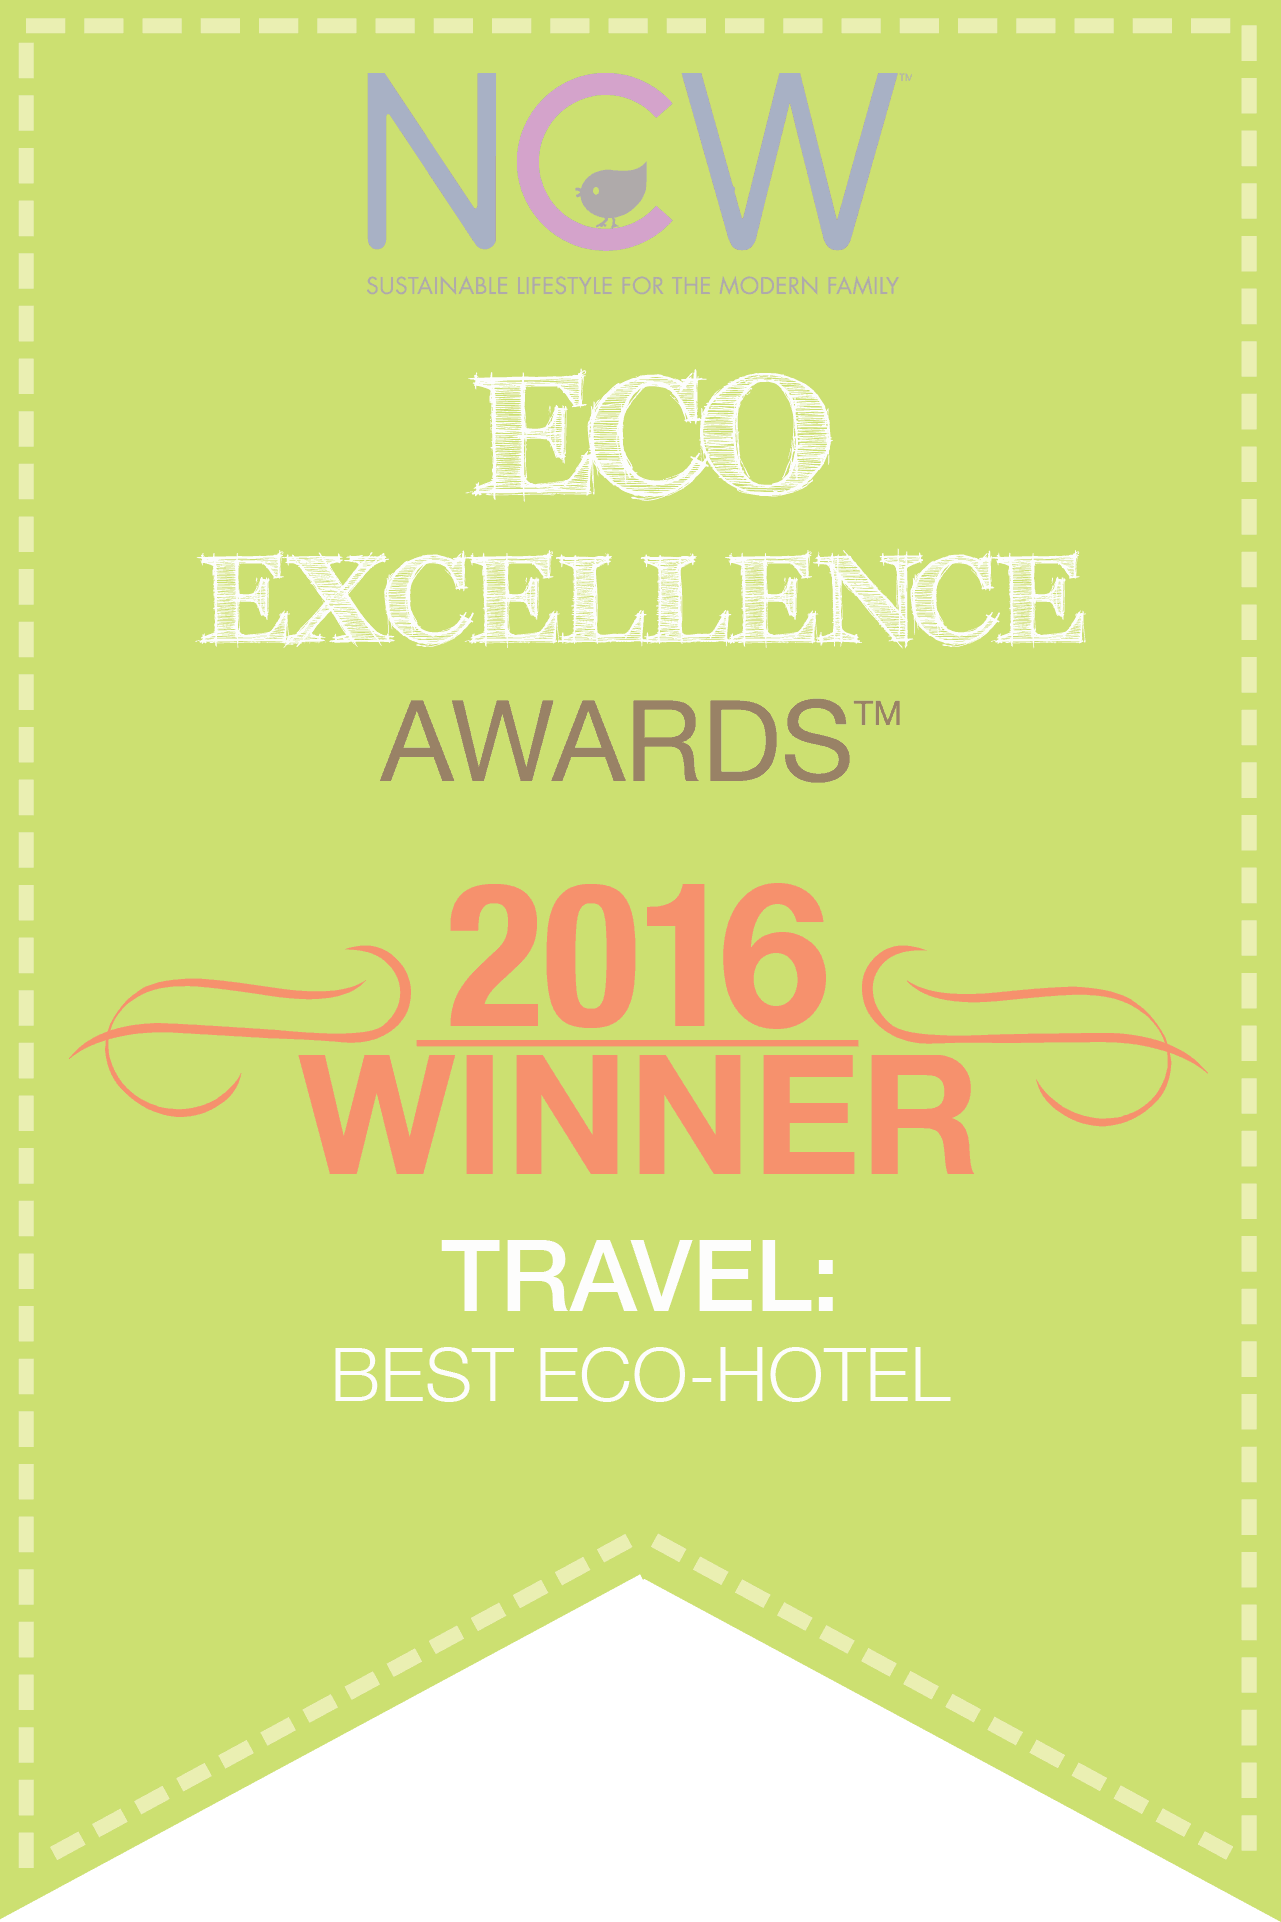 Best Ecohotel in the World for 2016 Awarded to Hamanasi Resort by NCW Magazine